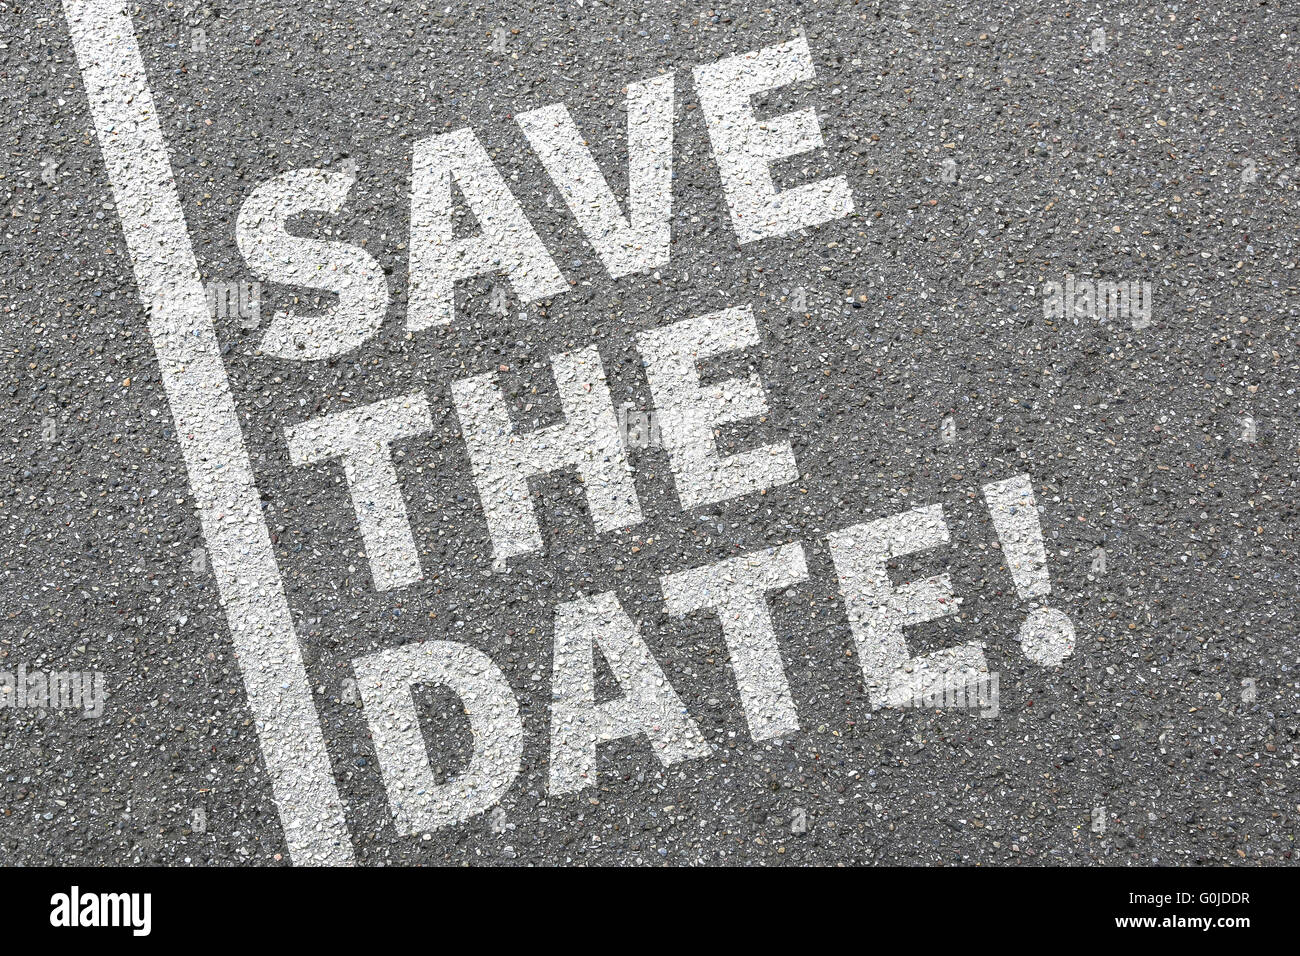 Save the date invitation message information invite business concept - Stock Image